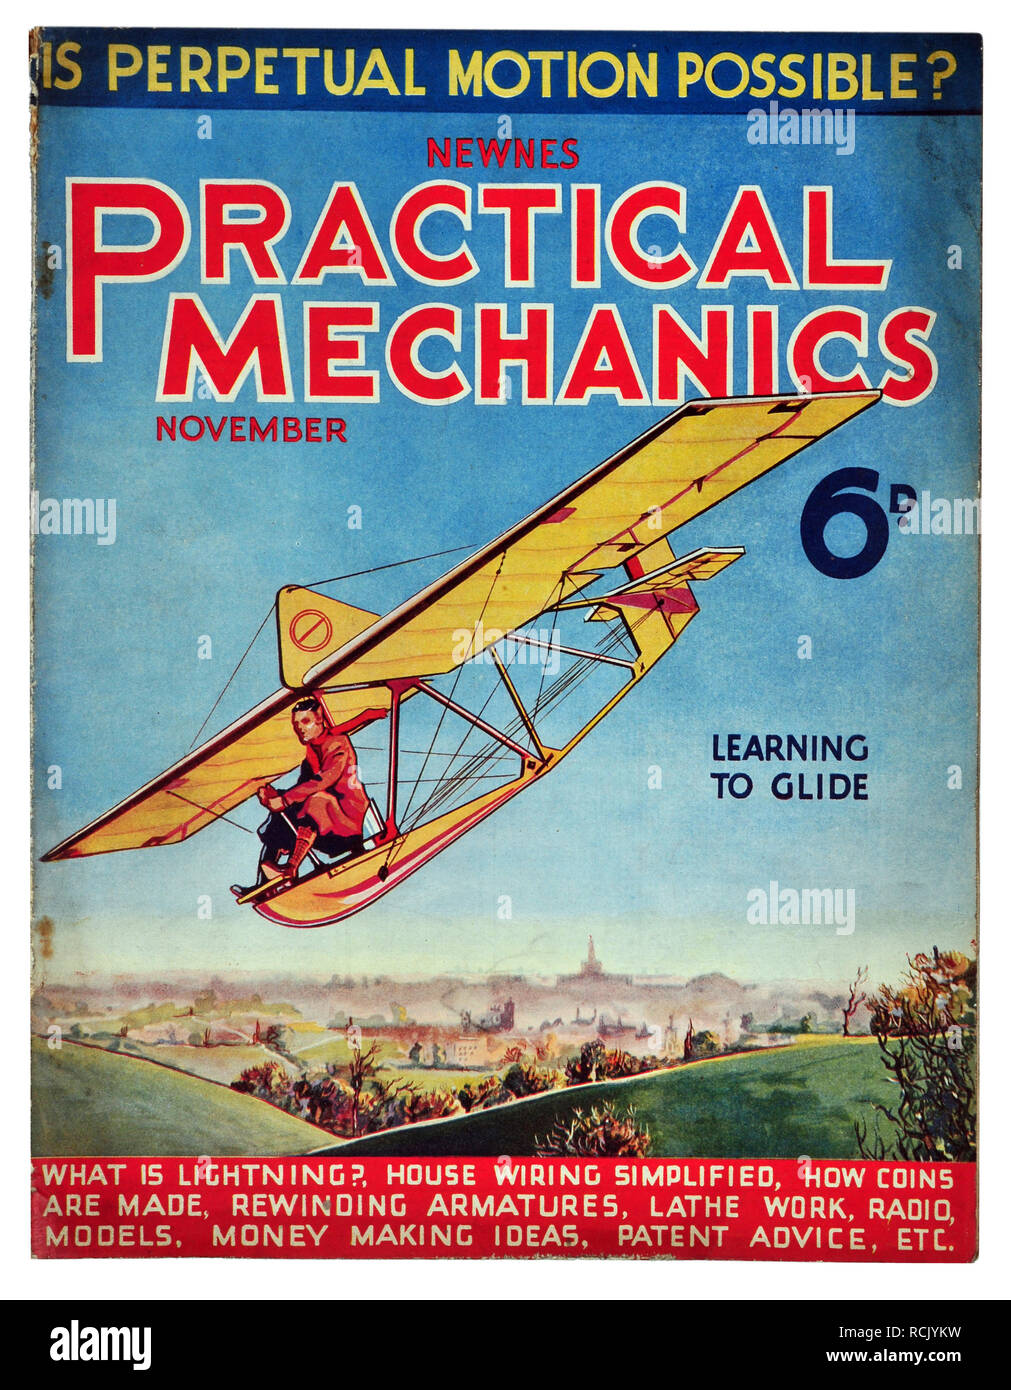 Newnes practical mechanics November 1934 costing 6D Learning to glide - Stock Image